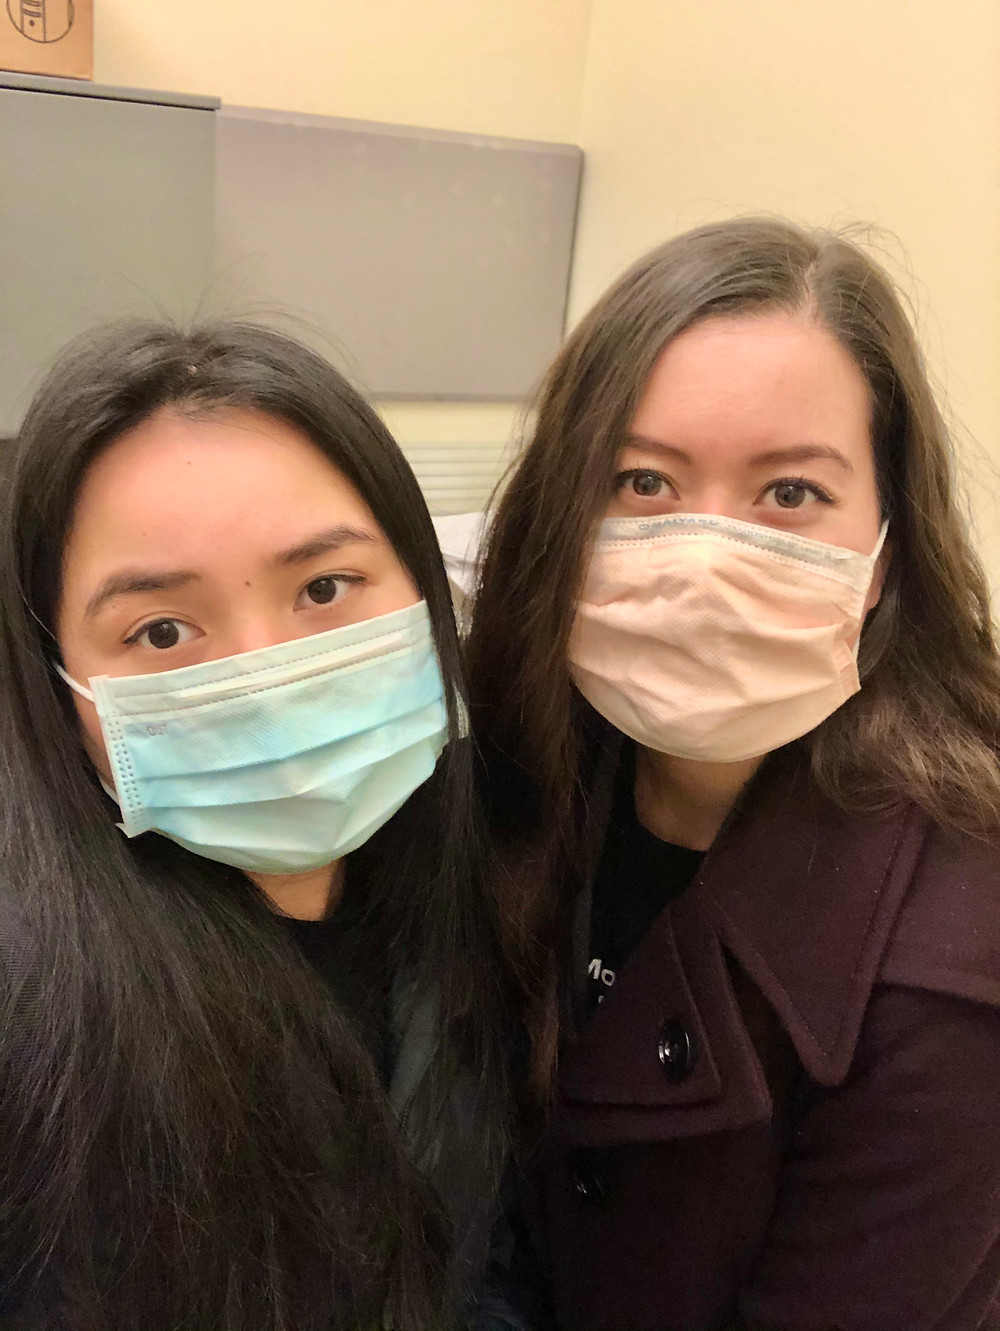 p.s. we did not go out and buy these masks. p.p.s. Don't steal masks from hospitals